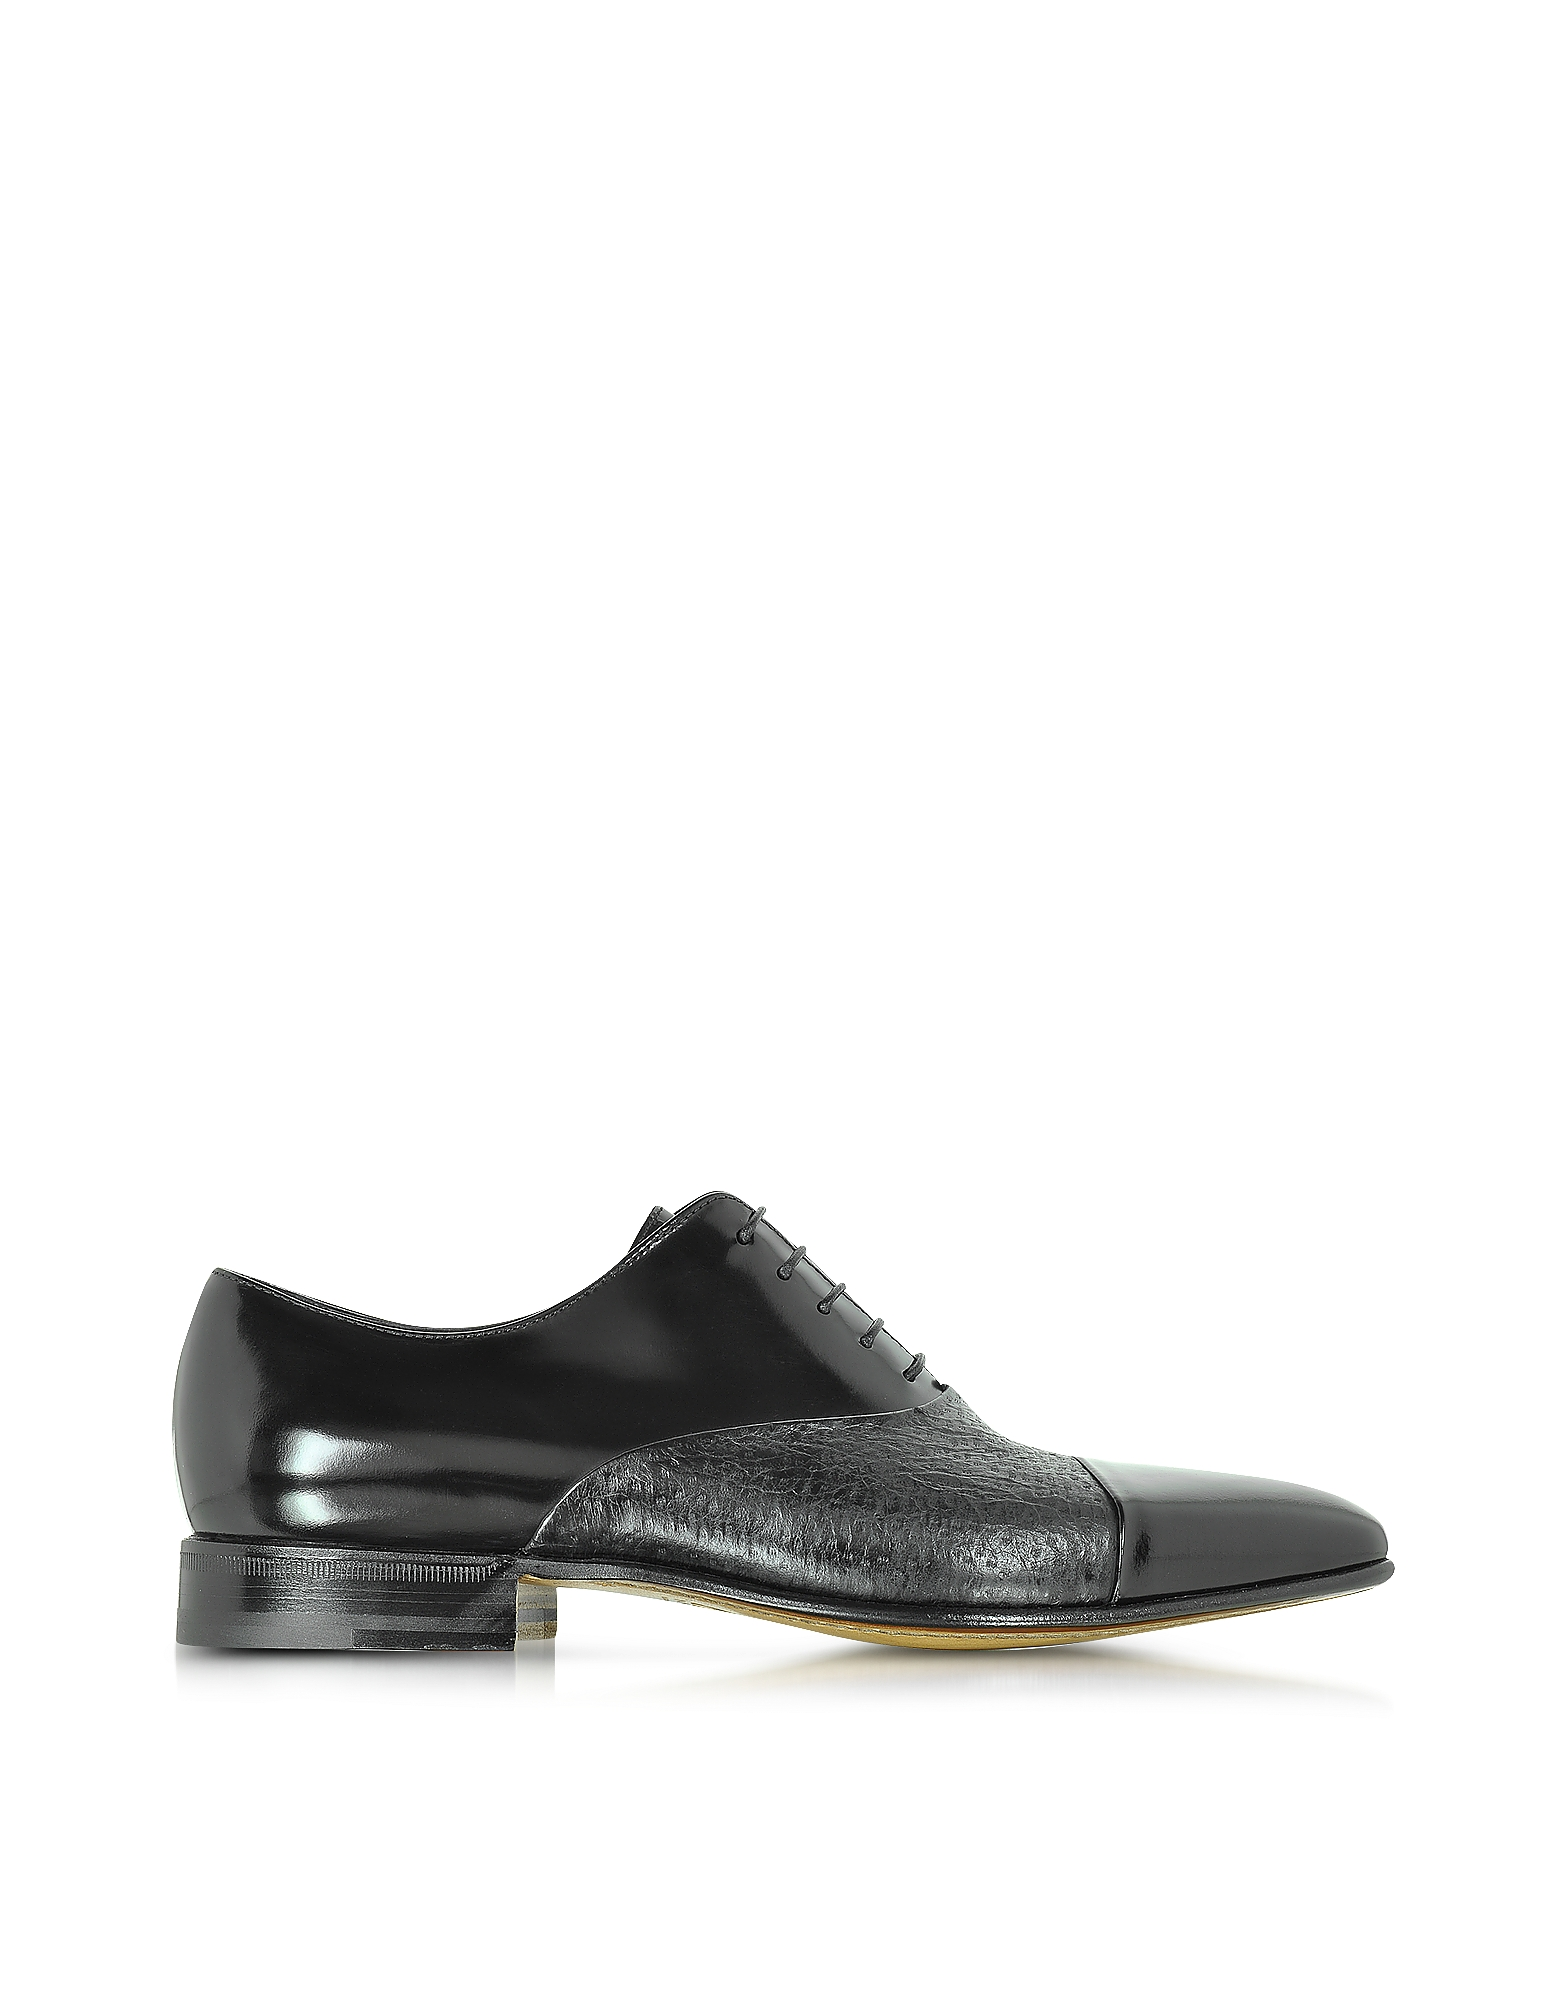 Moreschi Shoes, Digione Black Peccary and Calf Leather Oxford Shoes